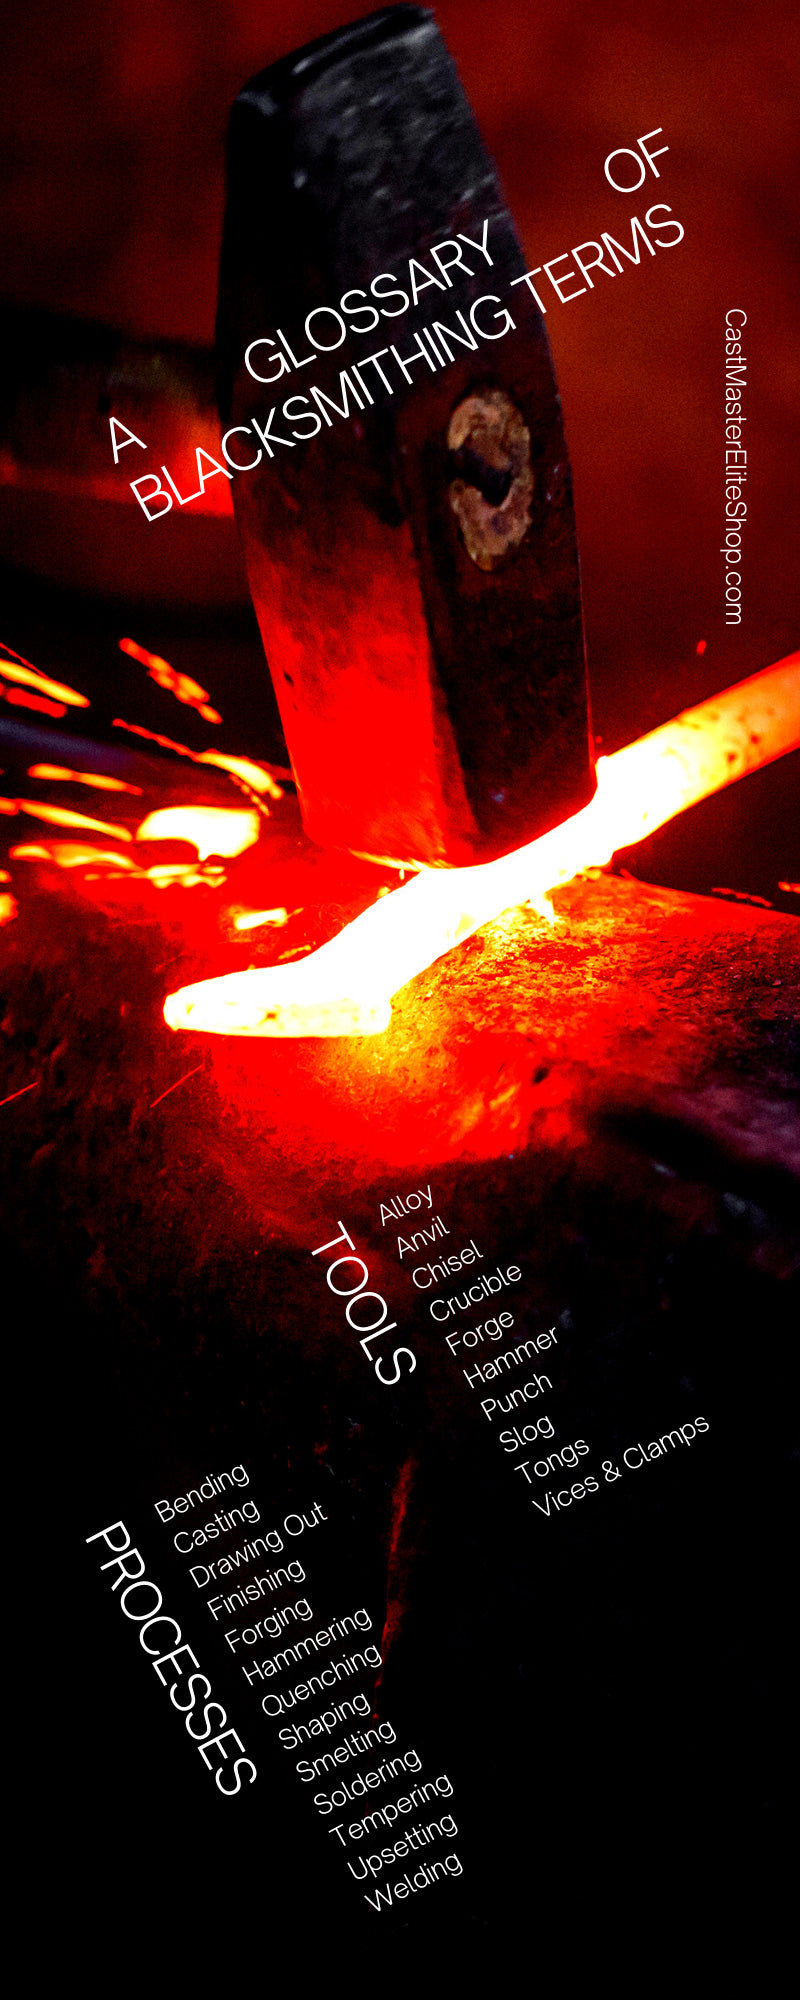 A Glossary of Blacksmithing Terms